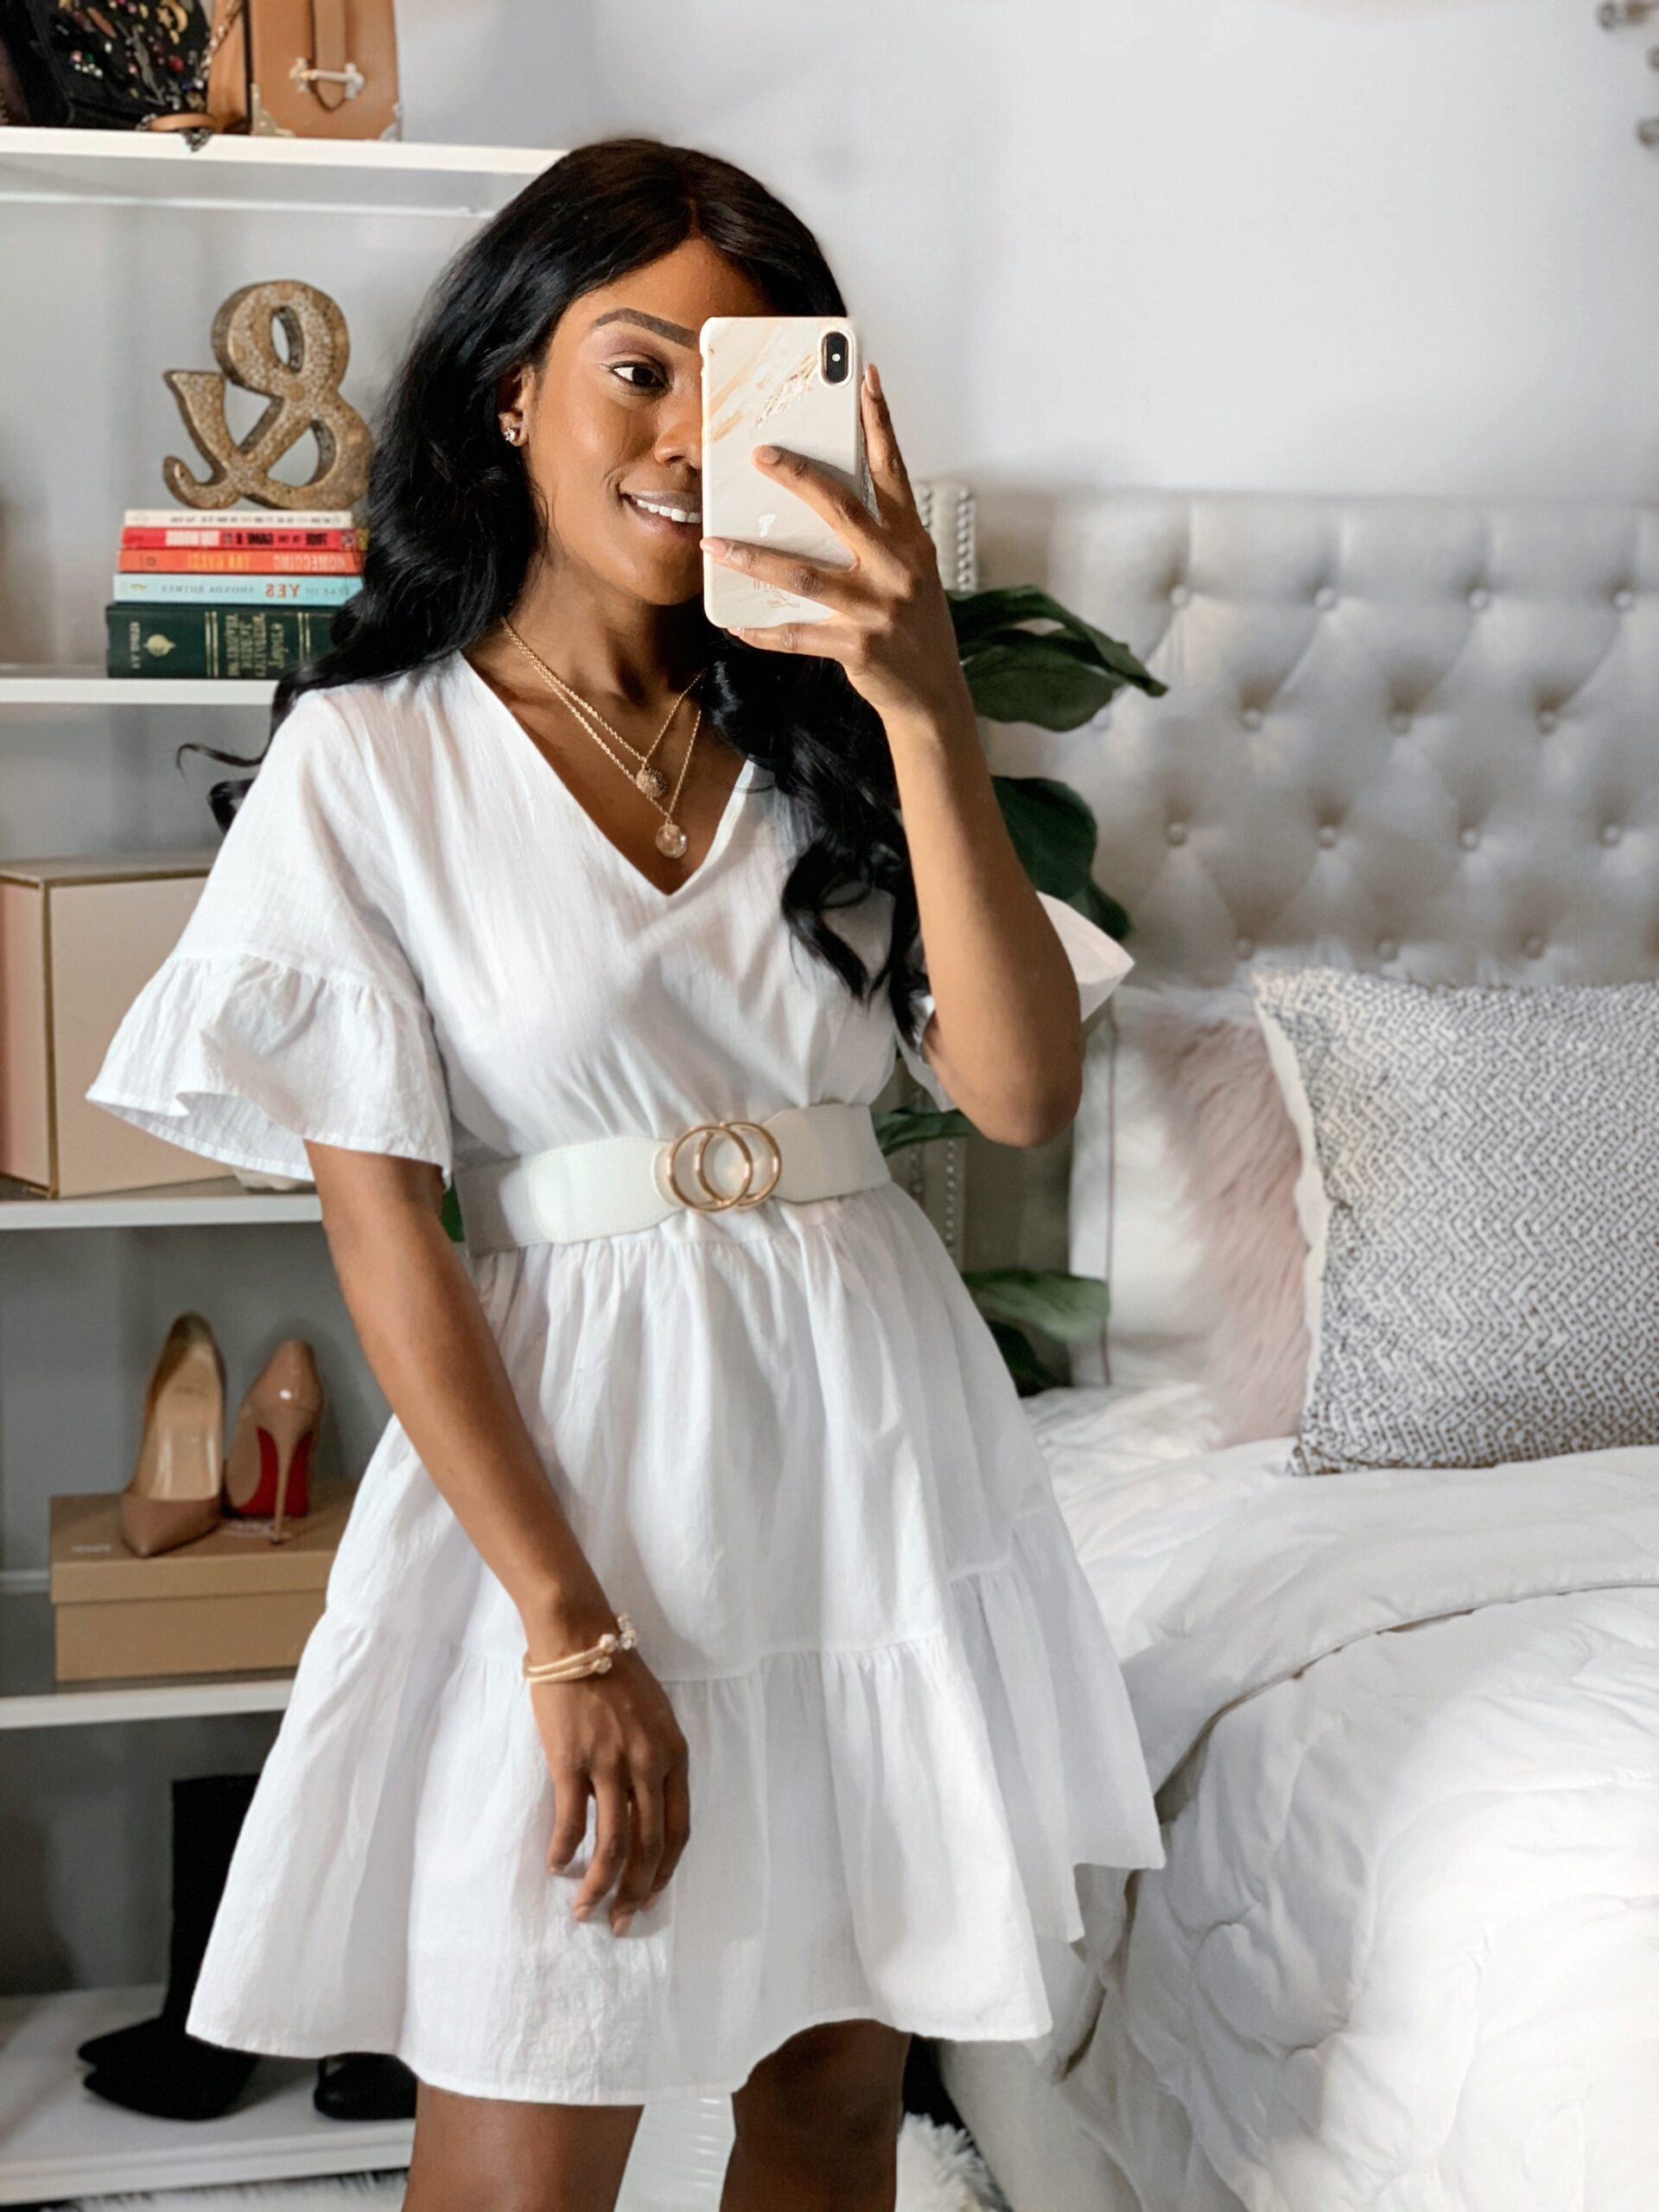 Amazon Fashion : women's white shift dress with side pocket and bell sleeves. Great for beach vacation and casual outing.